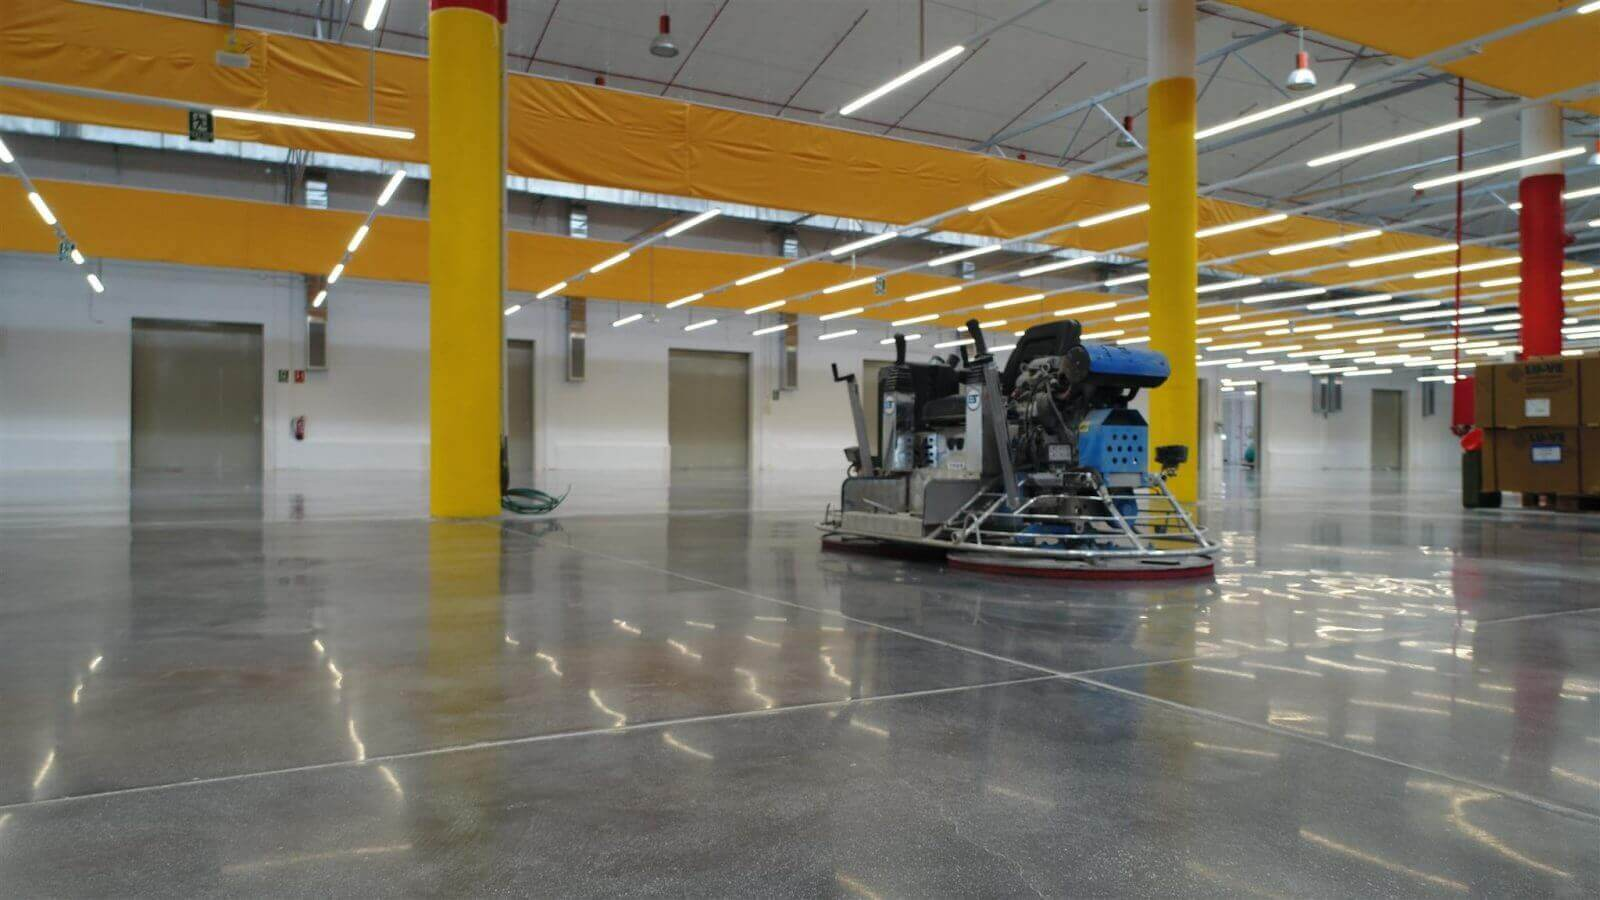 shiny concrete floor with power trowell